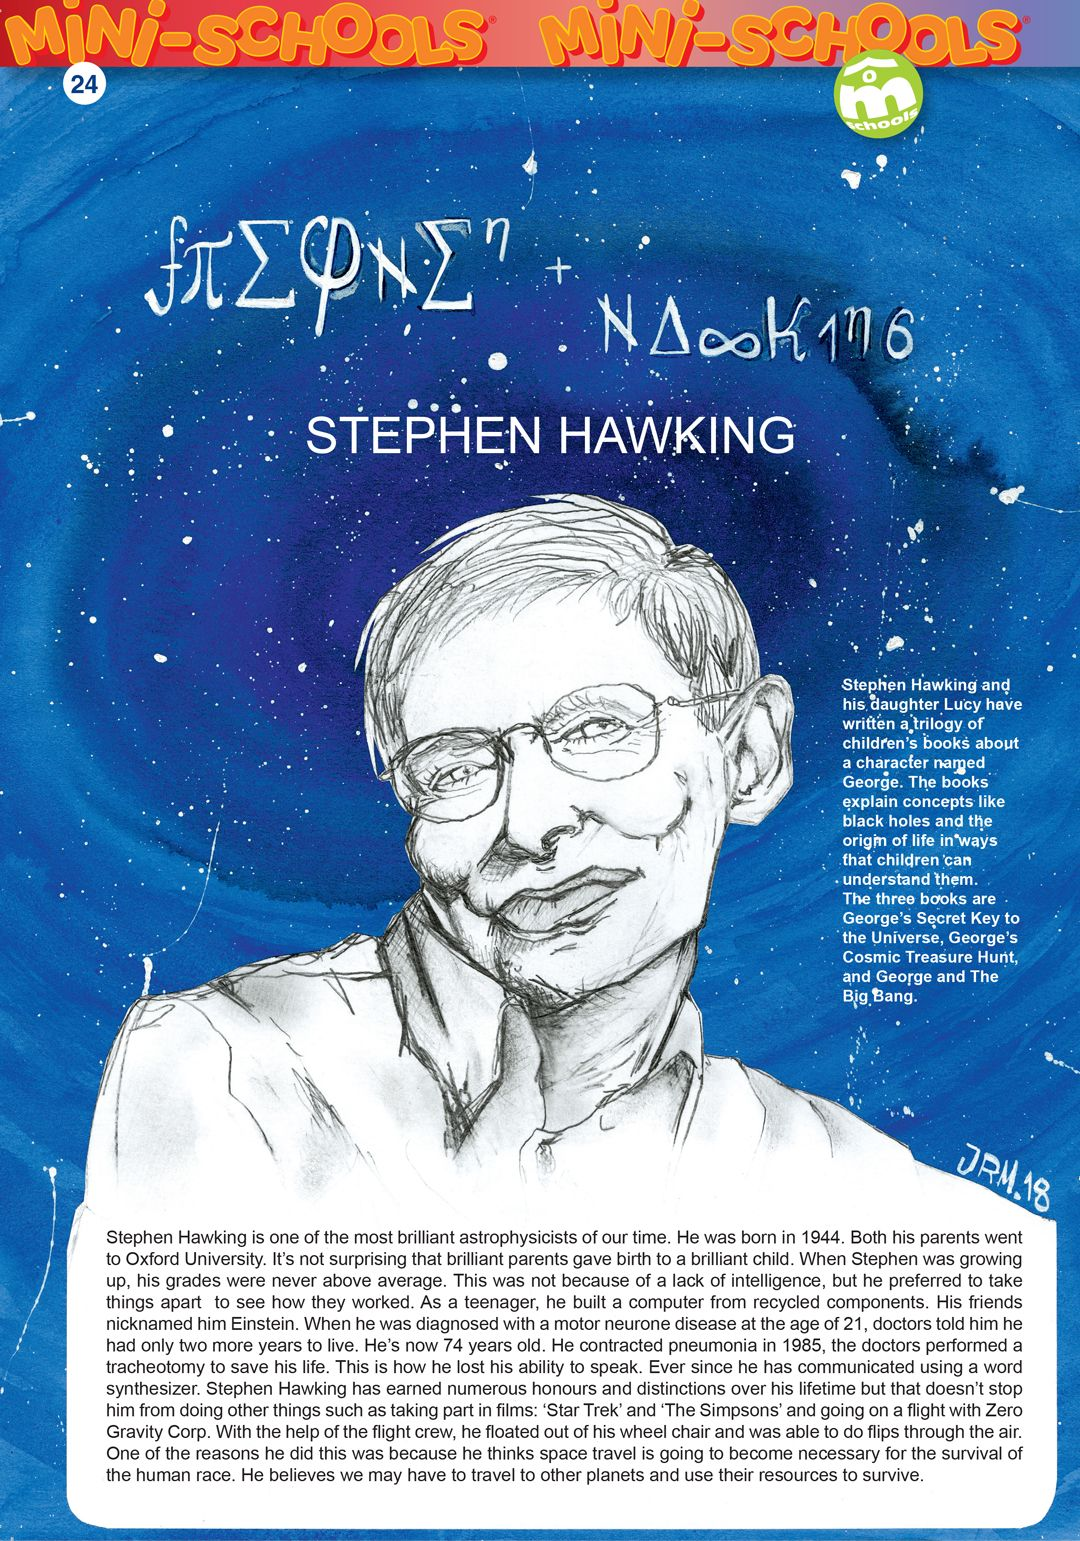 Stephen Hawking is one of the most brilliant